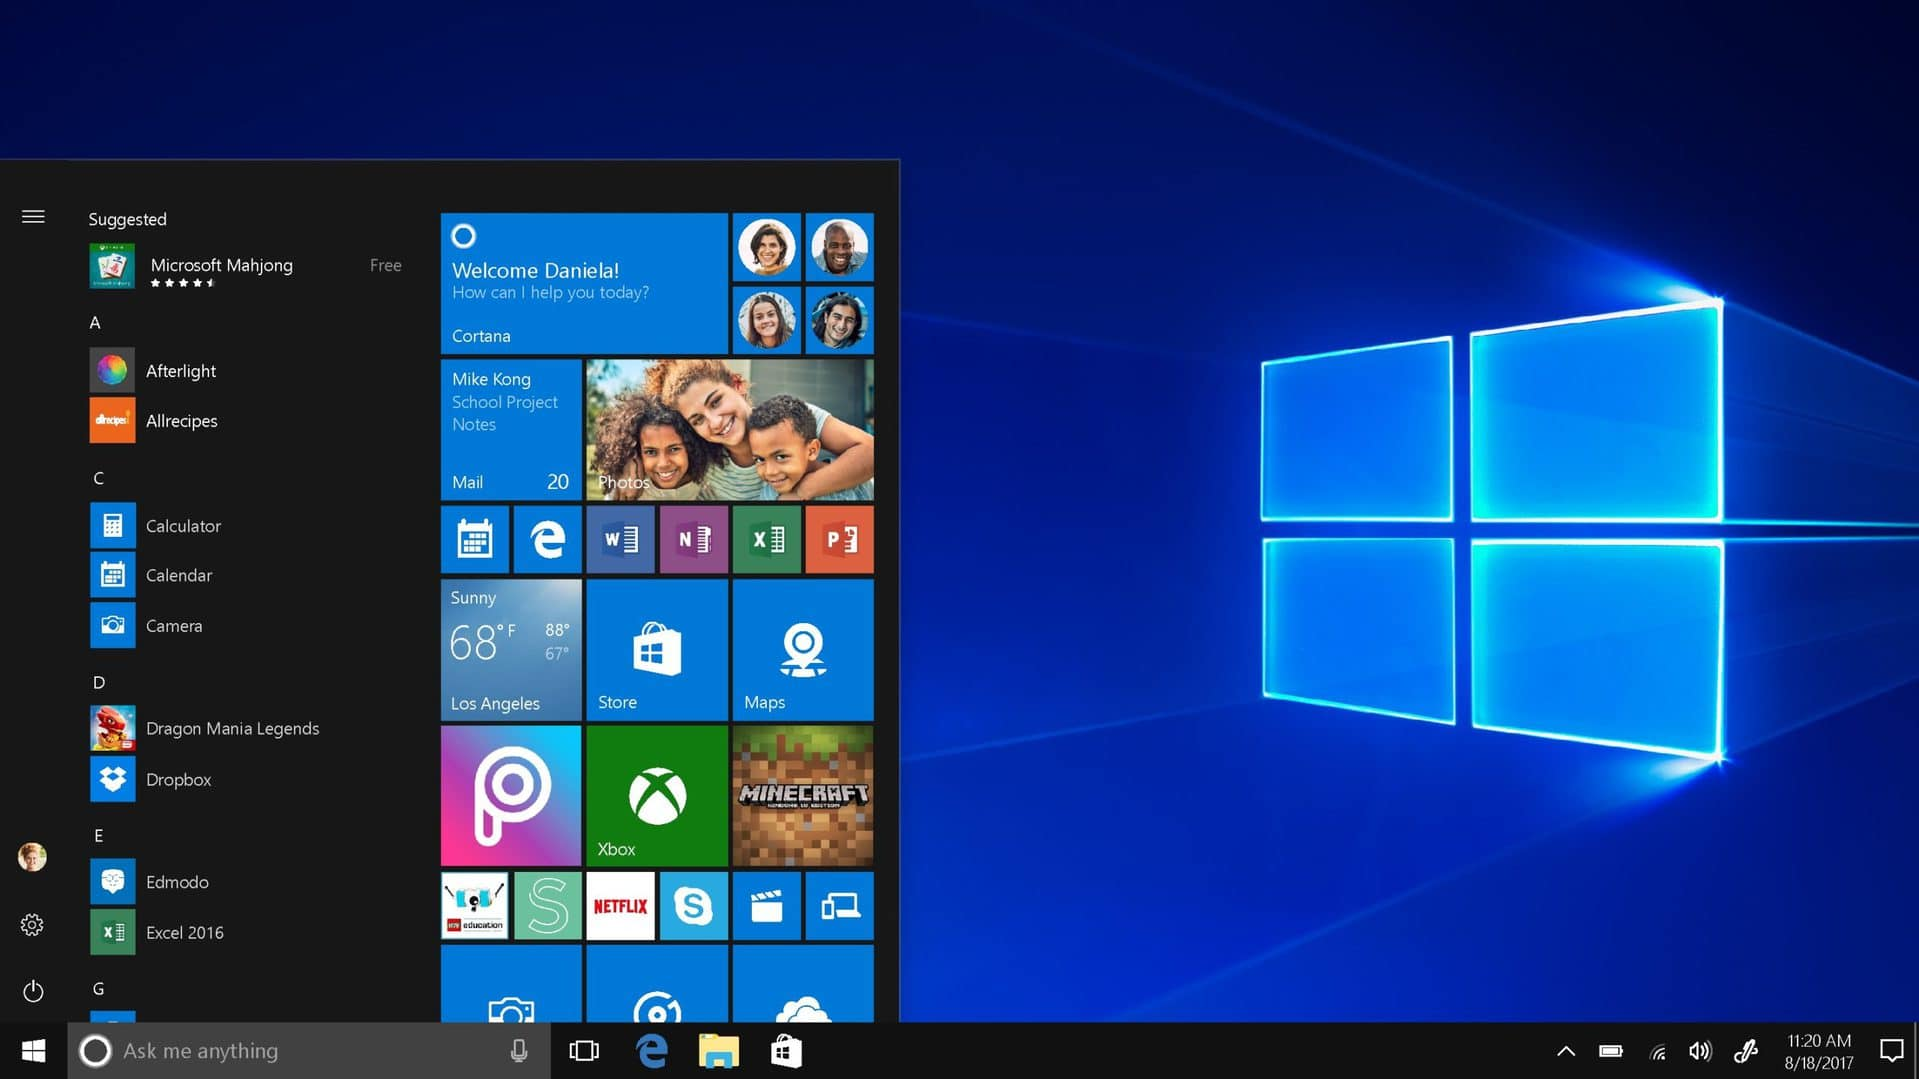 How to change icon size in windows 10? Easy guide